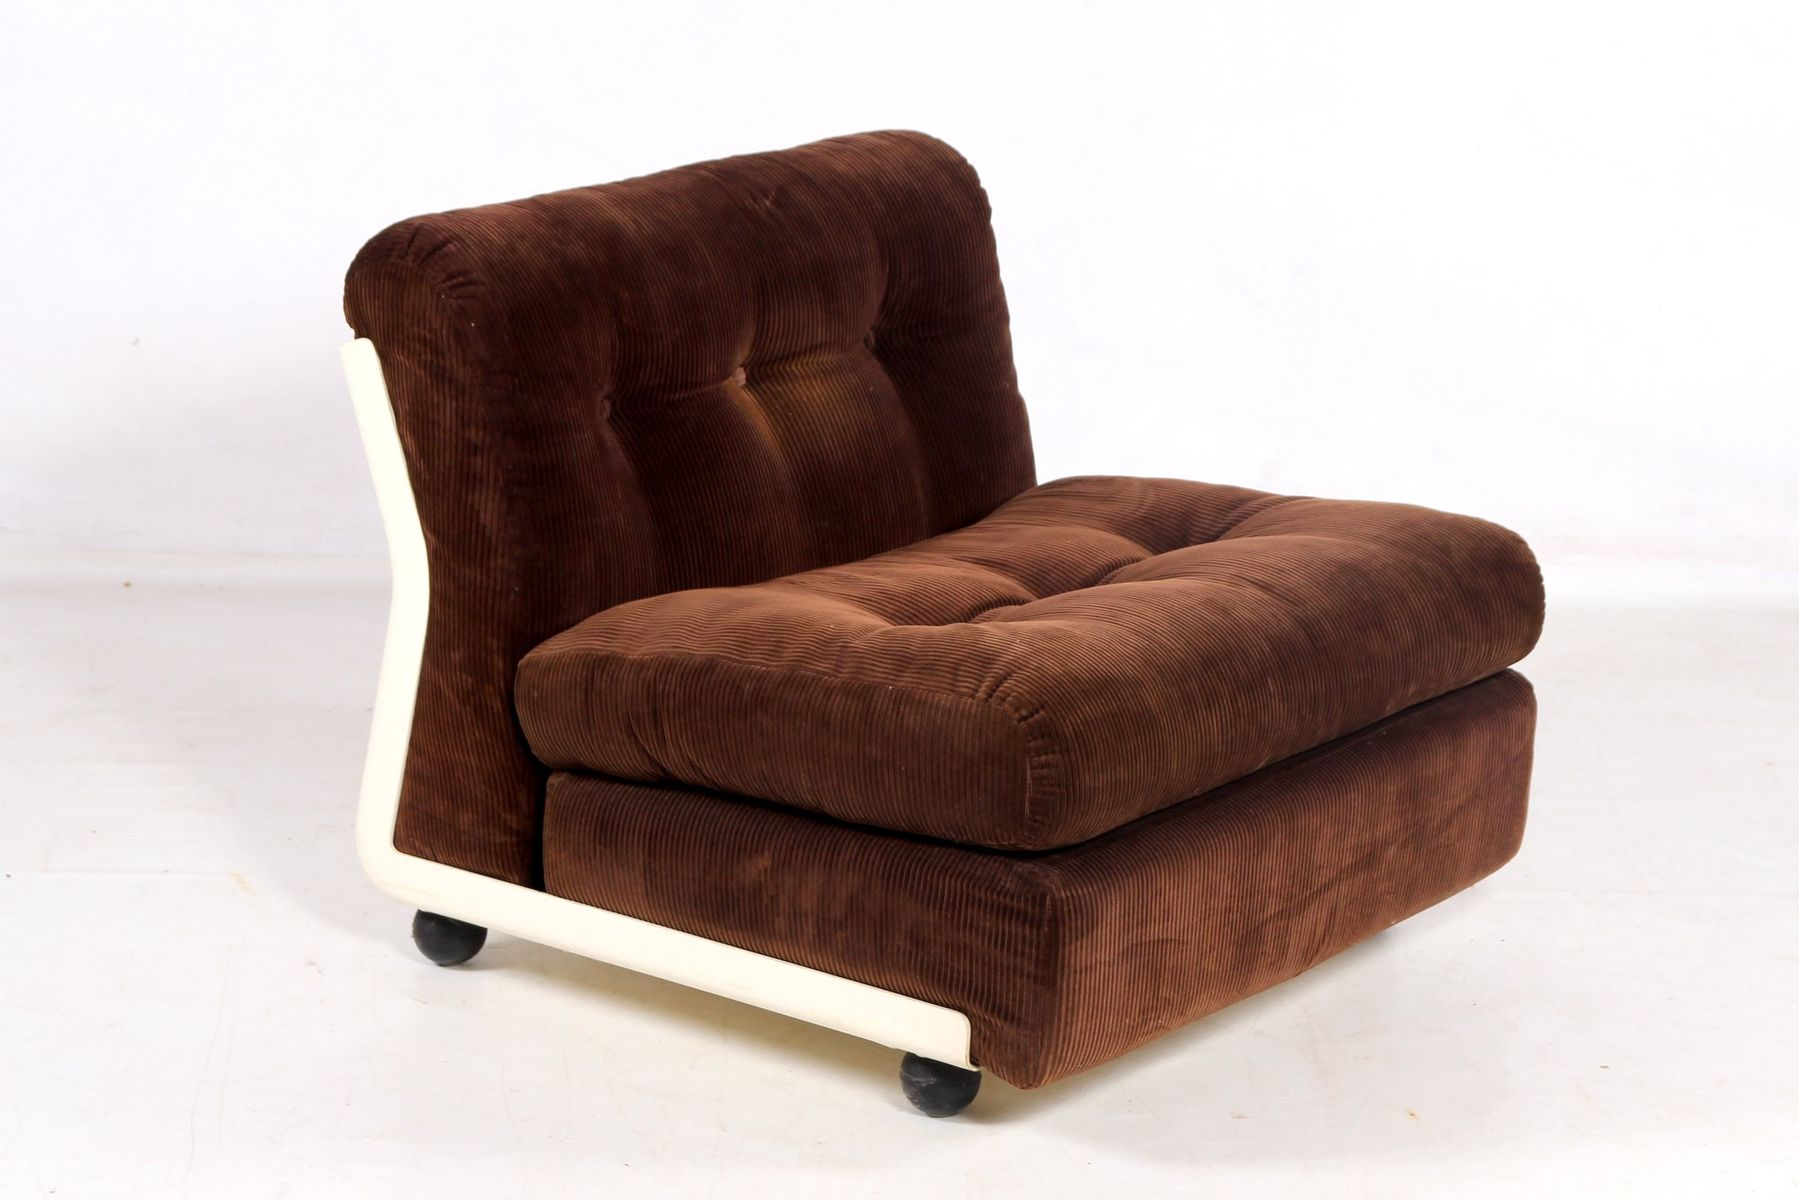 Amanta White Amp Brown Seating Group By Mario Bellini For C